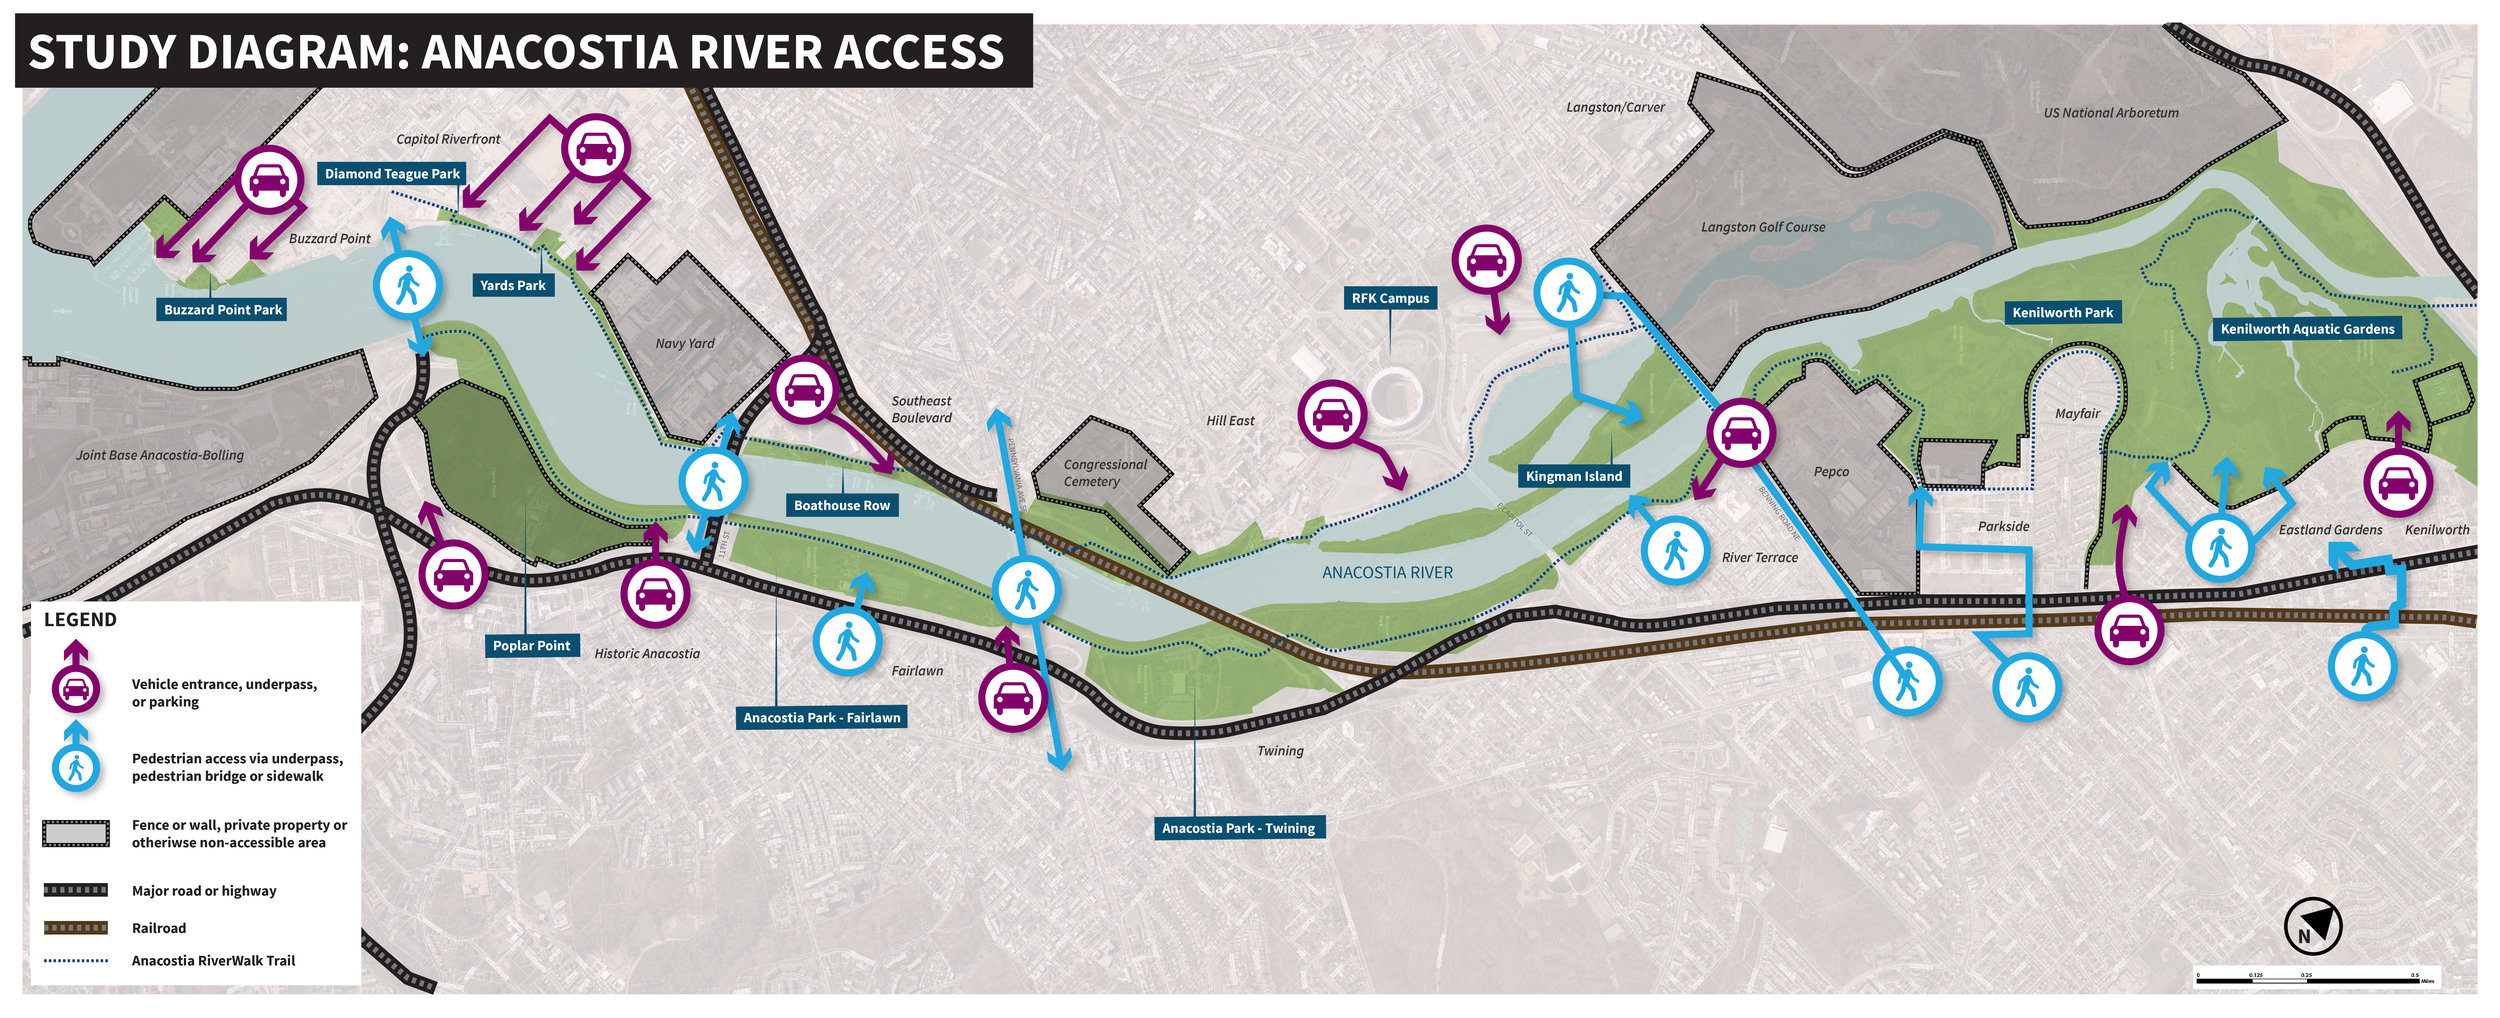 This diagram shows major barriers to getting to the waterfront (highways, fences and large parcels) and highlights the few access points to the parks fro the adjacent neighborhoods, adapted from a diagram courtesy of SmithGroupJRR.